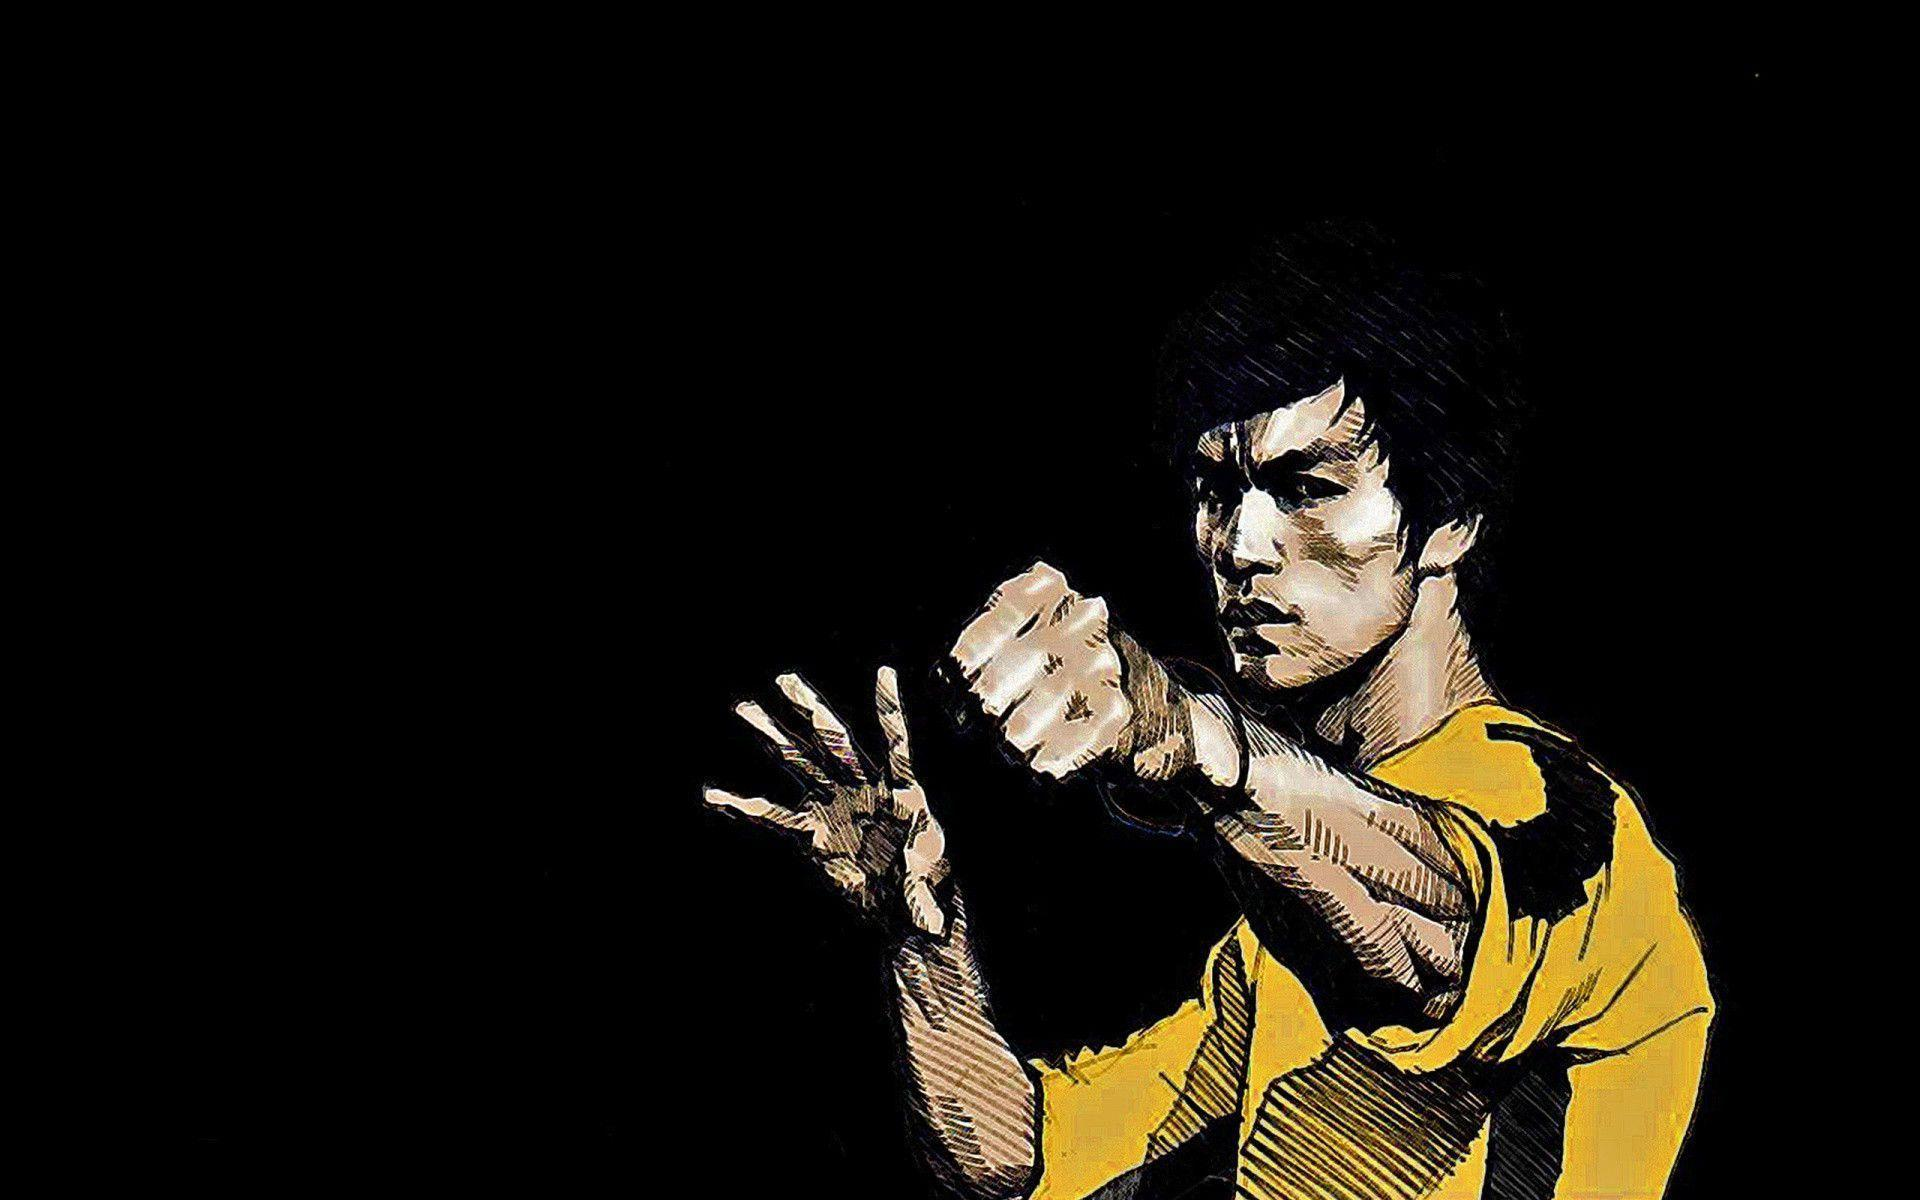 2560x1600 bruce lee desktop - photo #8